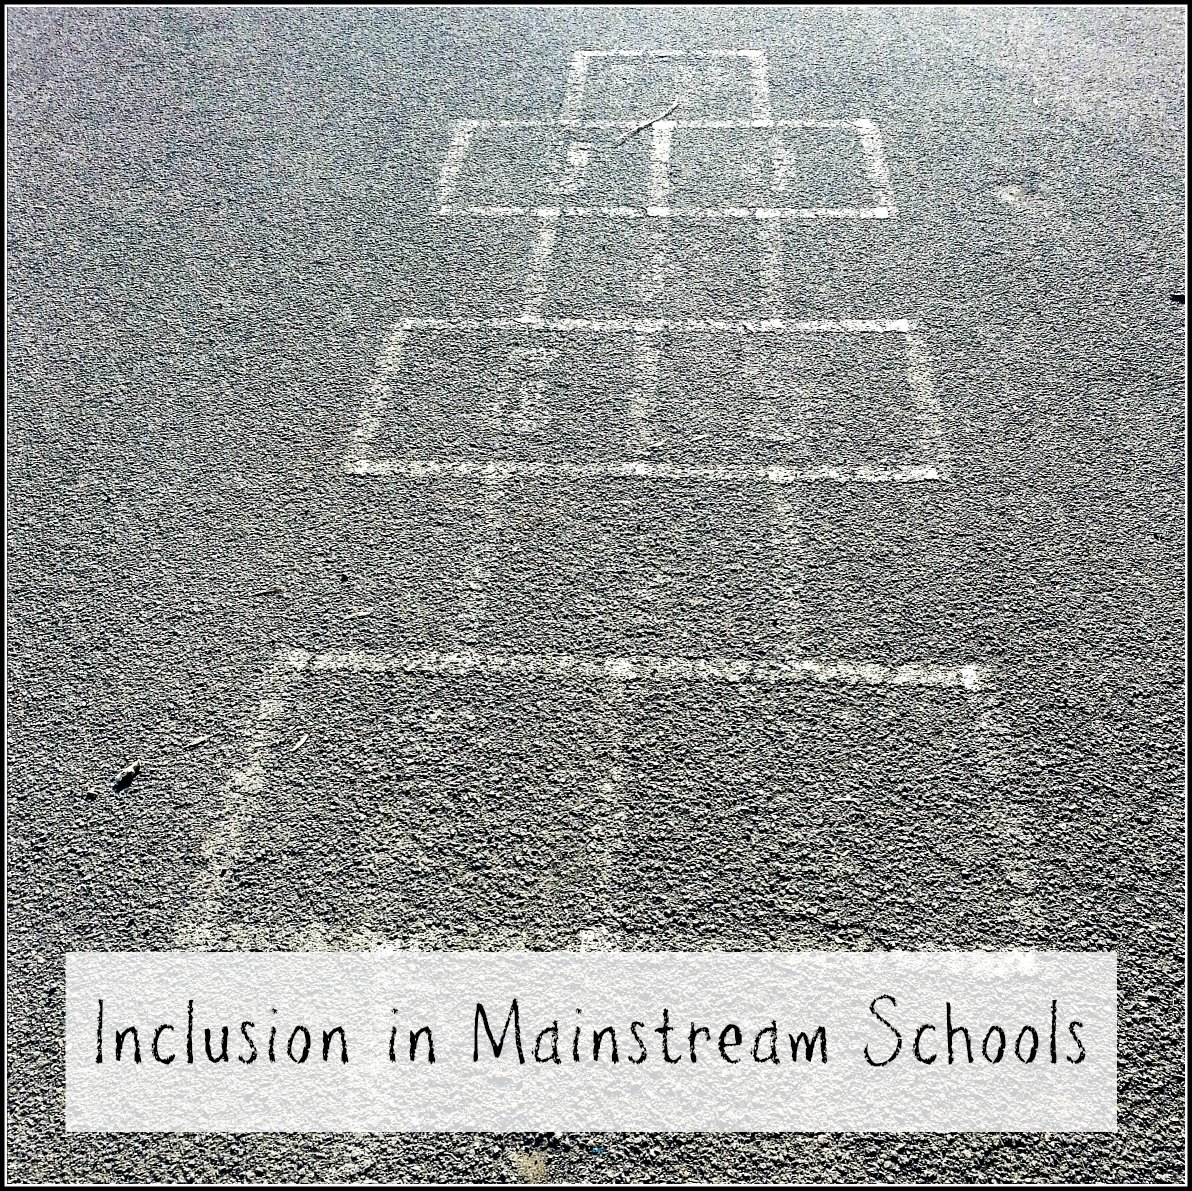 inclusion in schools What is inclusion inclusion is part of a much larger picture then just placement in the regular class within school it is being included in life and participating using one's abilities in day to day activities as a member of the community.